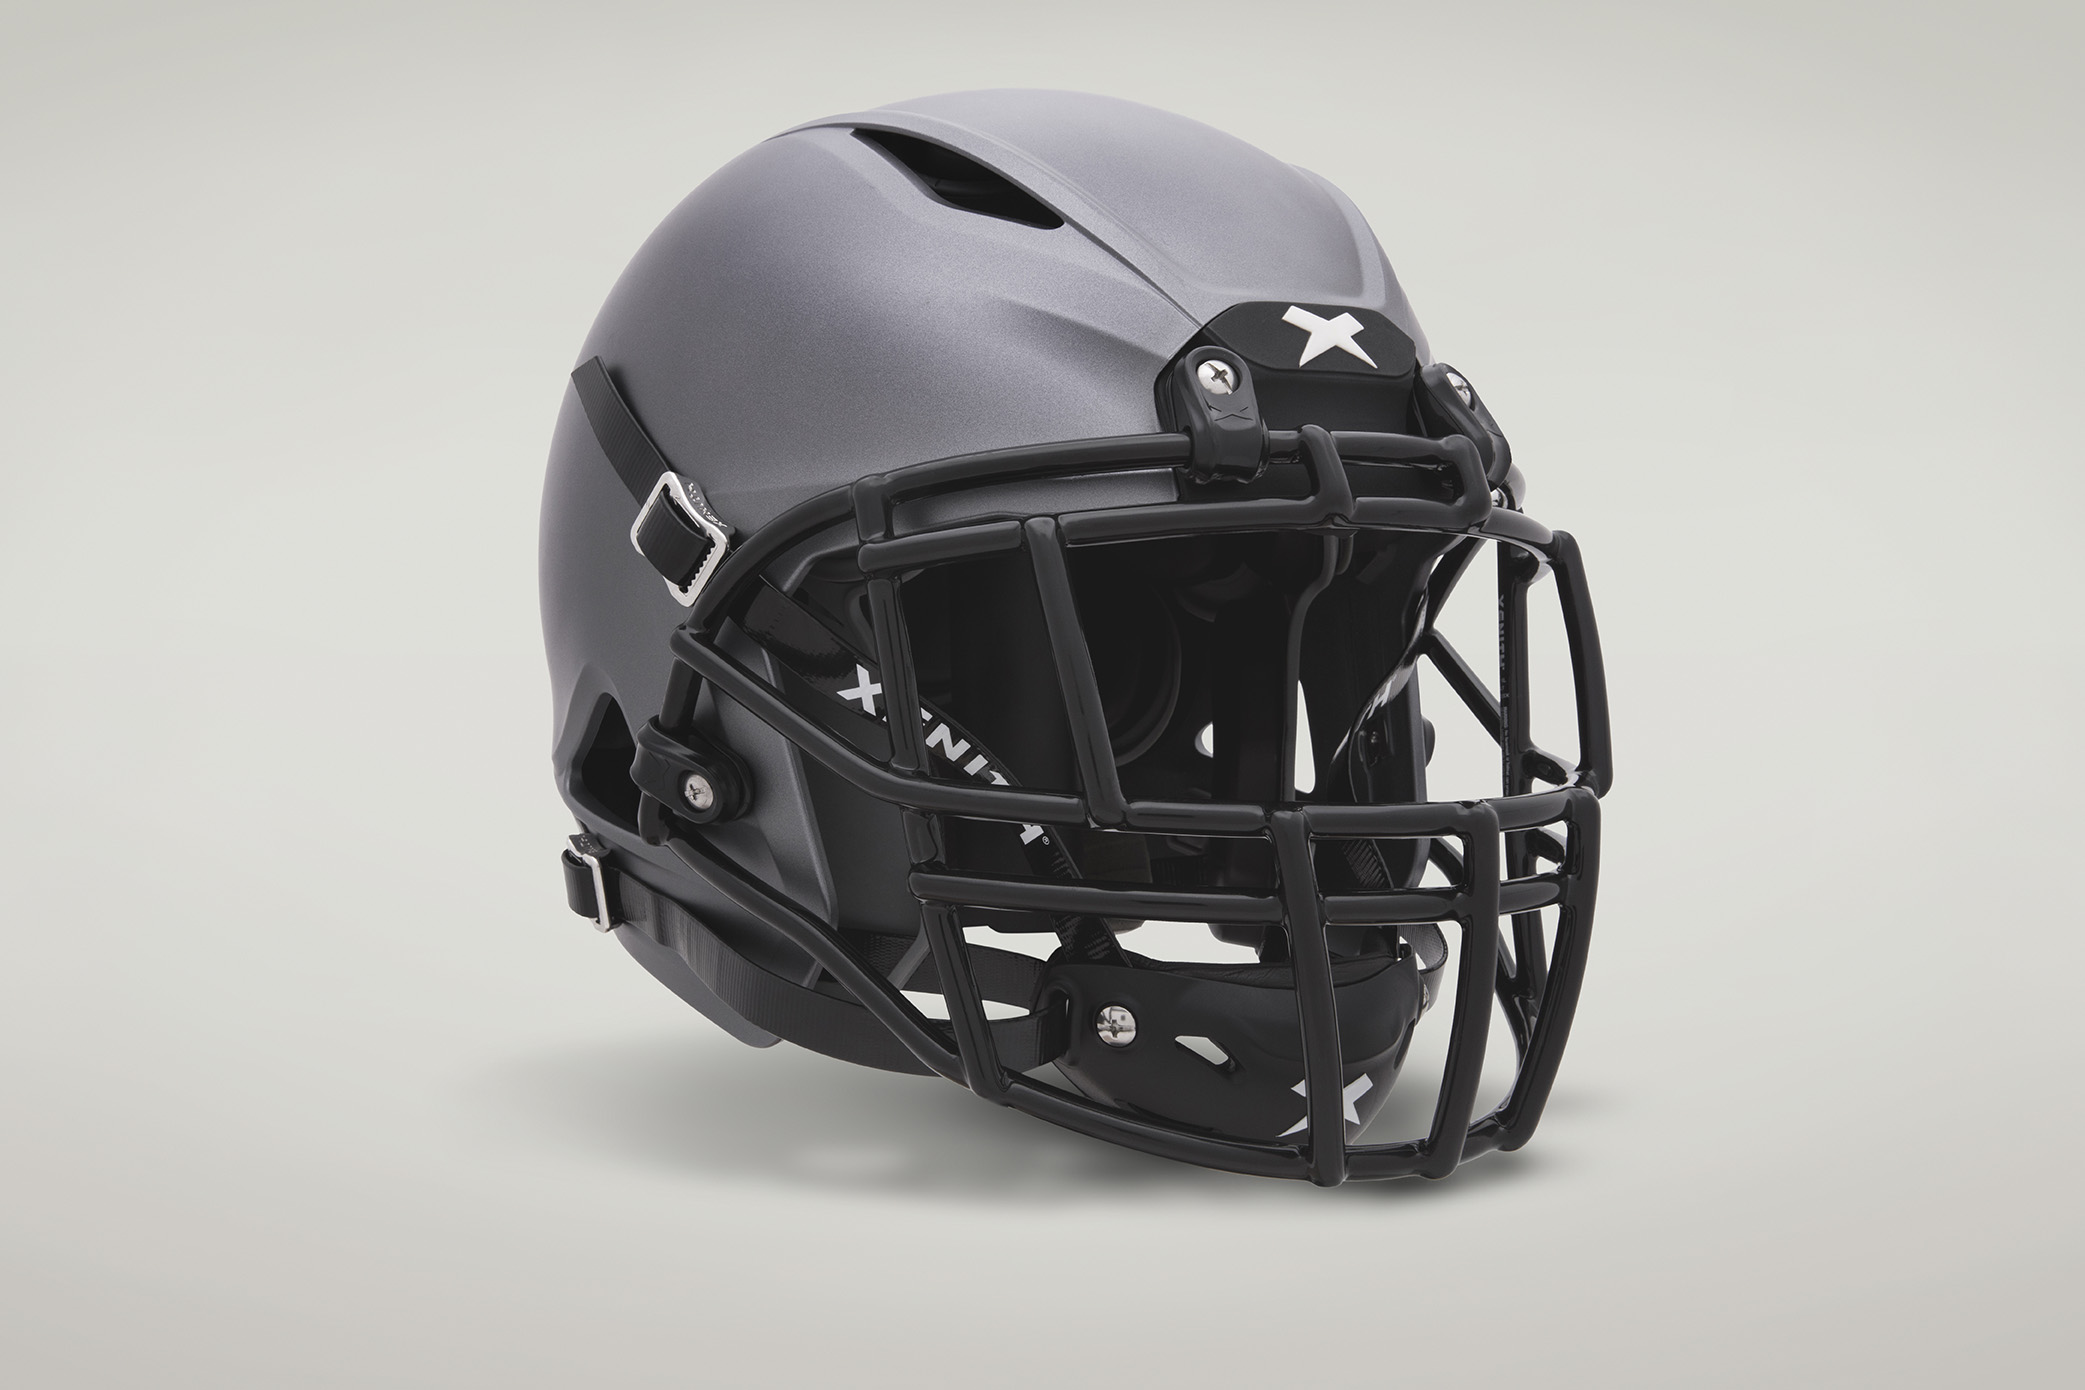 Introducing the Xenith Shadow, Football's Most Advanced Helmet